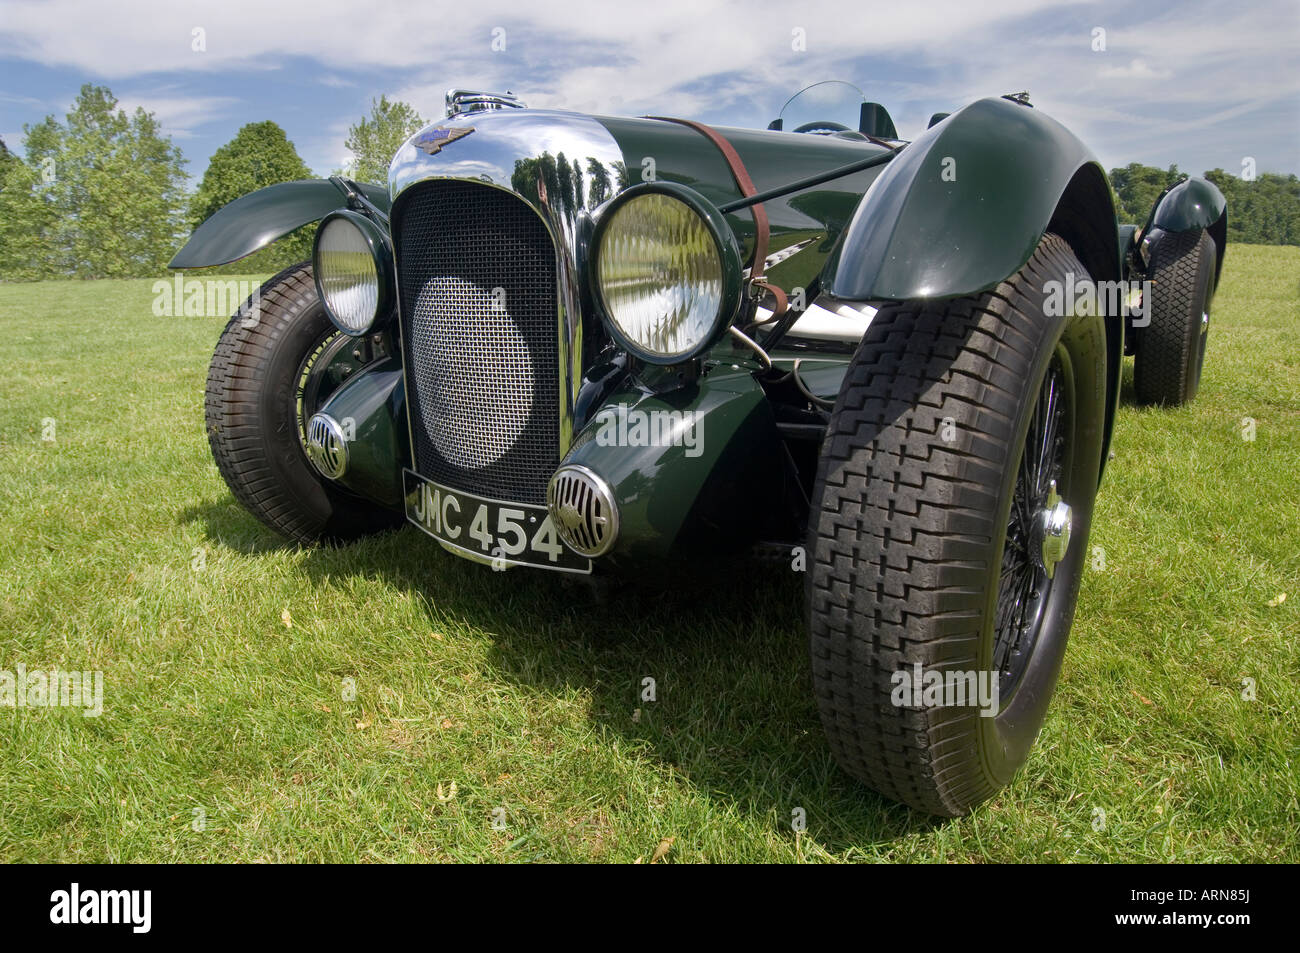 A close up of the front of a historic British racing green 1939 Lagonda V12 Le Mans motor car stood on grass - Stock Image